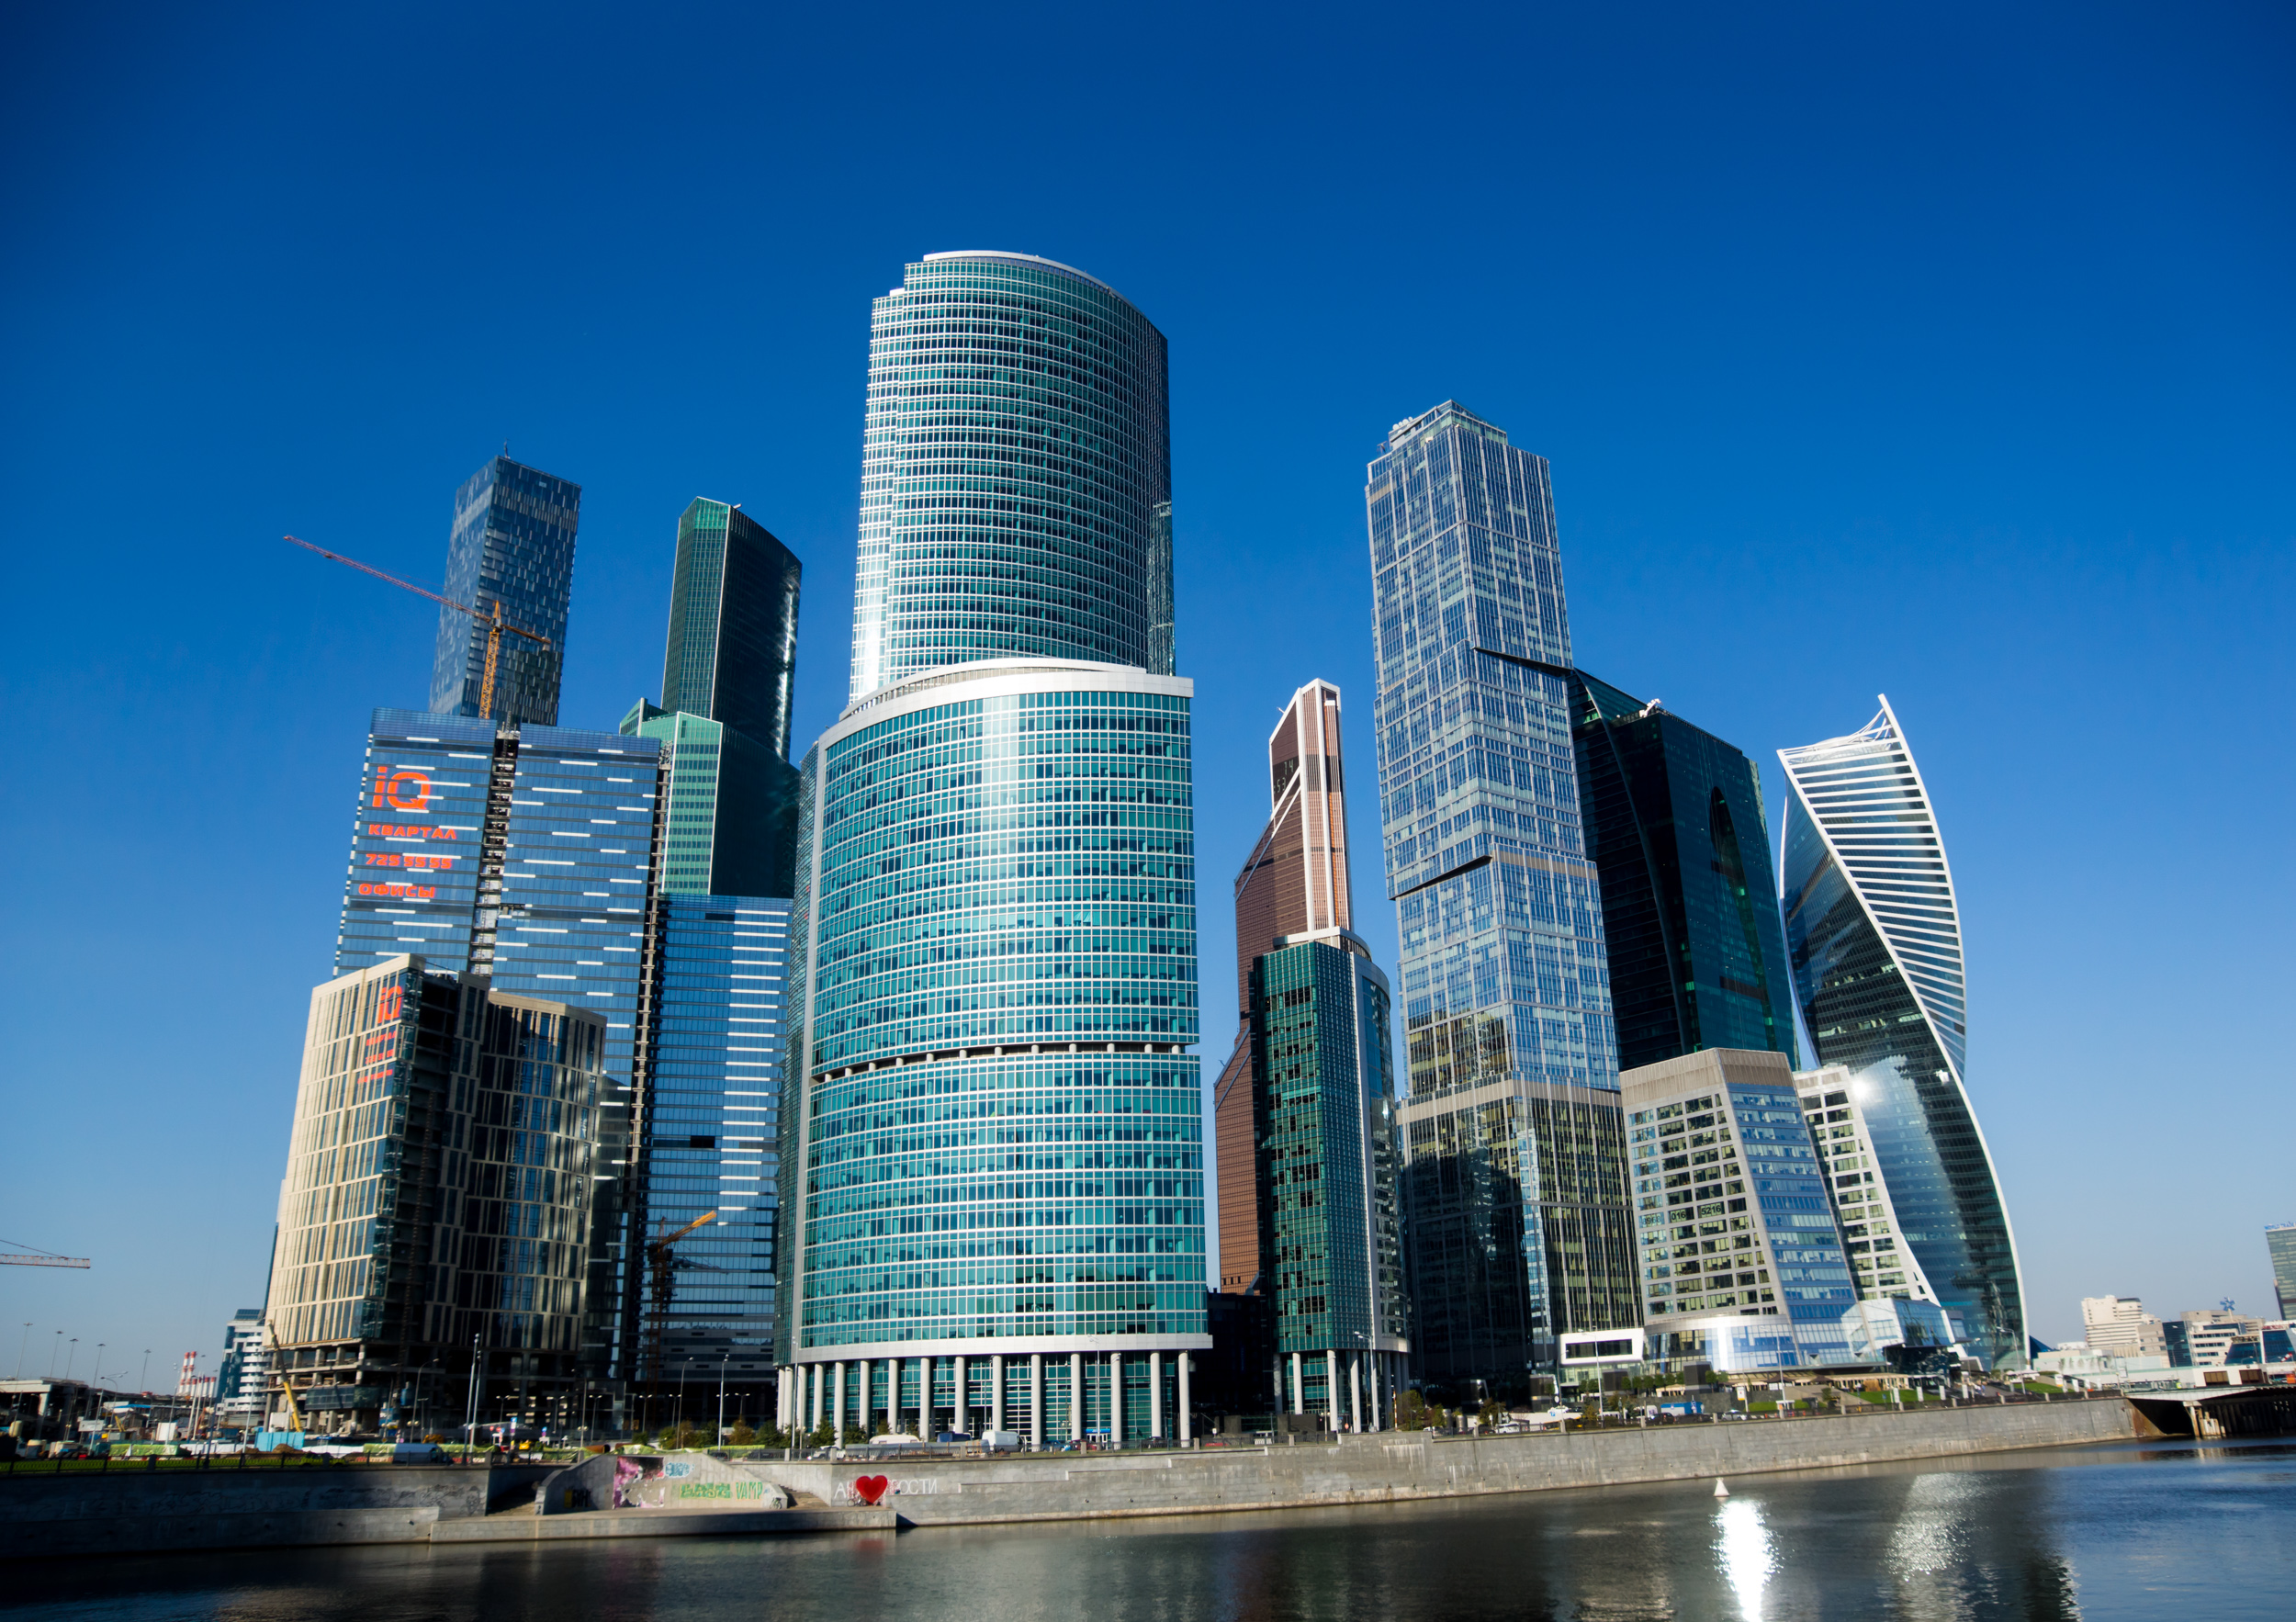 Moscow city waterfront